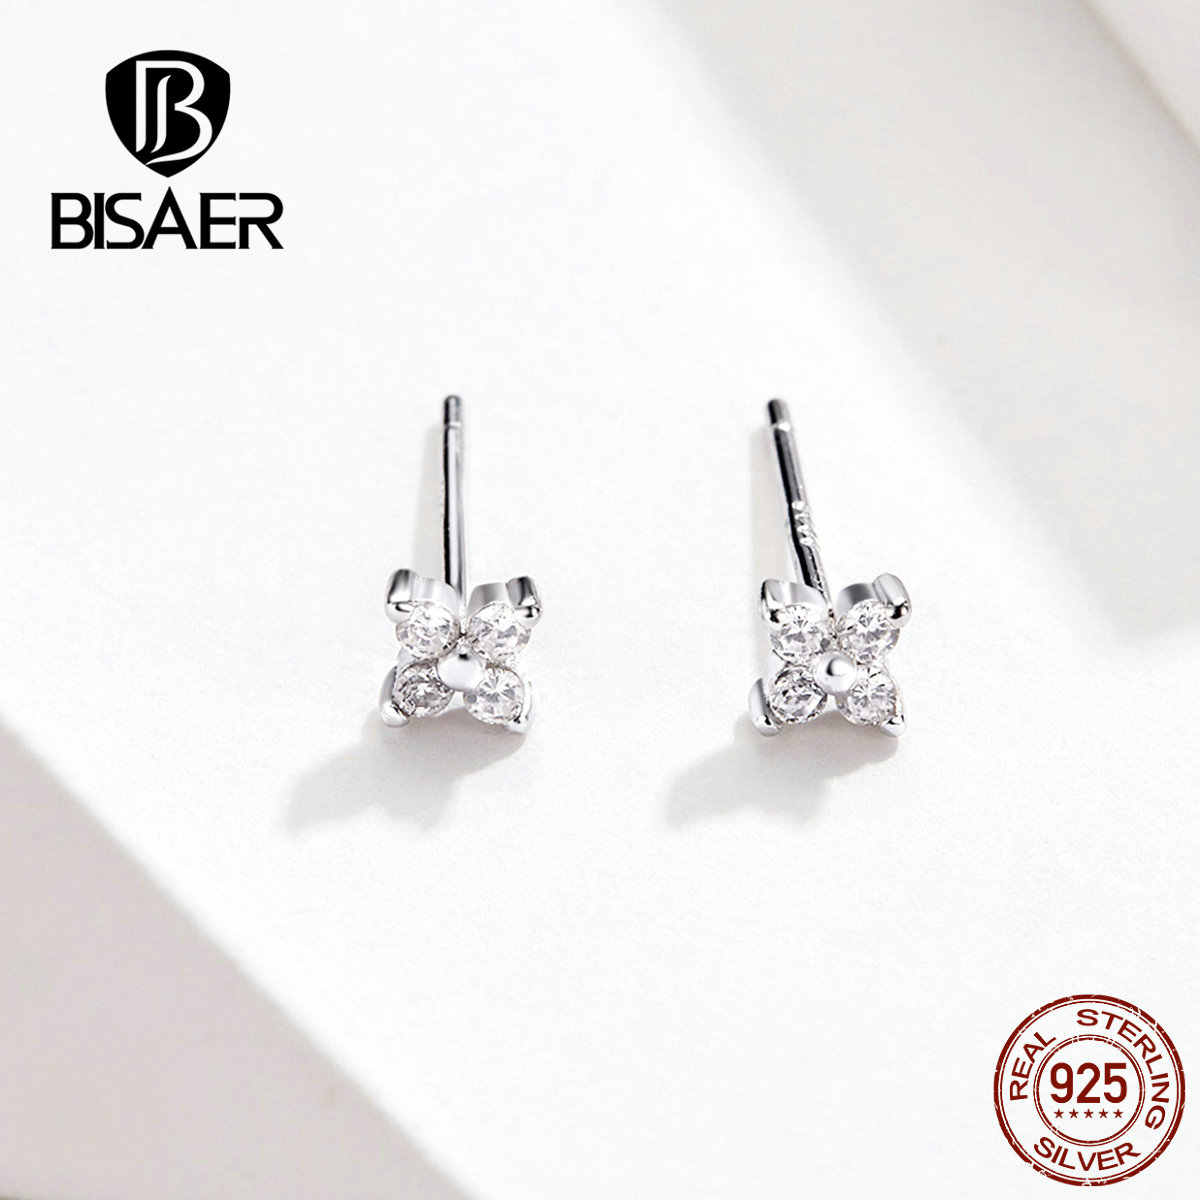 BISAER 925 Sterling Silver Shining Cubic Zircon And Square Exquisite Stud Earrings for Women Wedding Engagement Jewelry ECE648